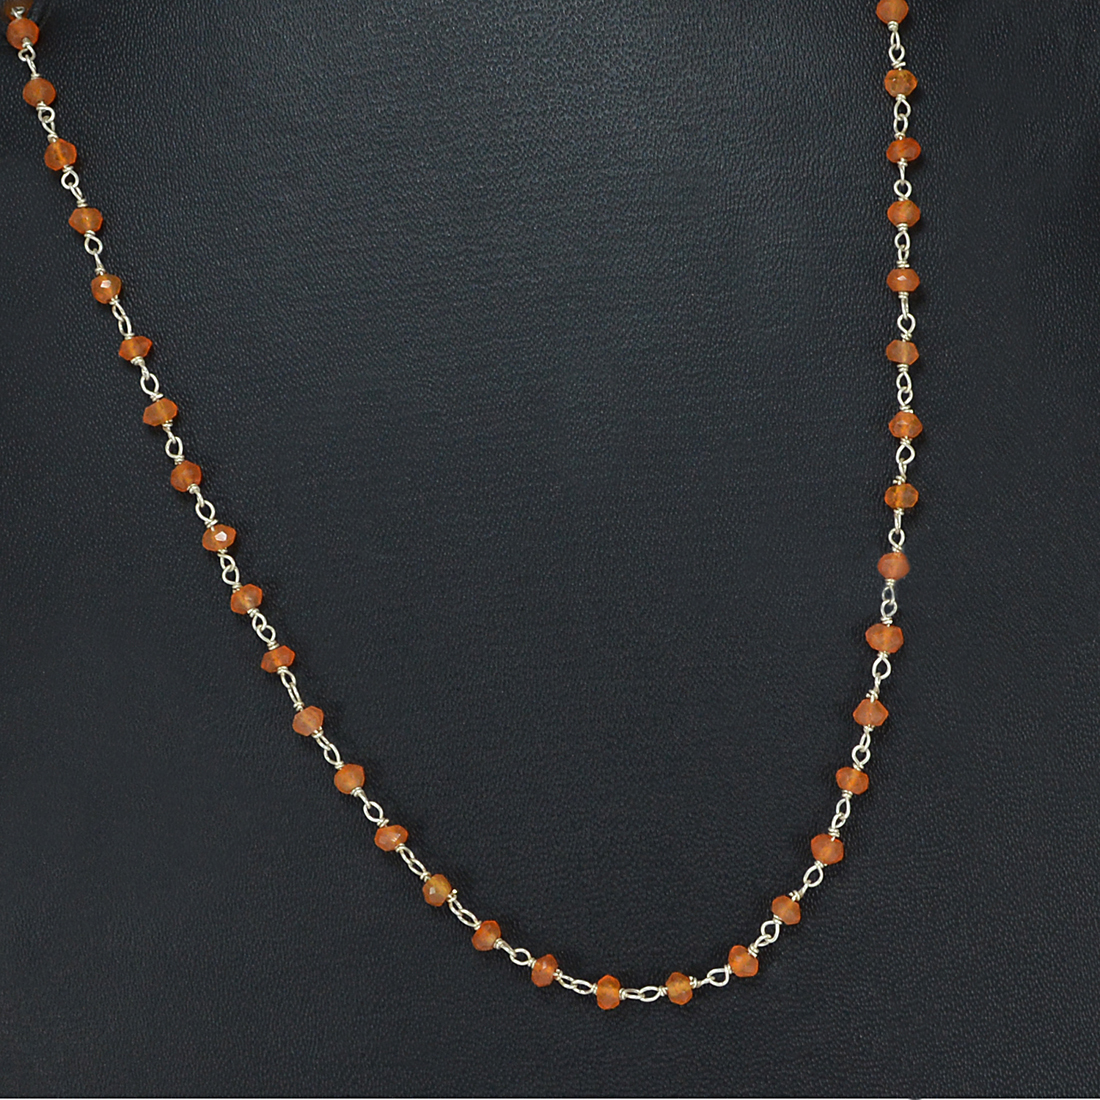 Carnelian Silver Beaded Necklace PG-155759